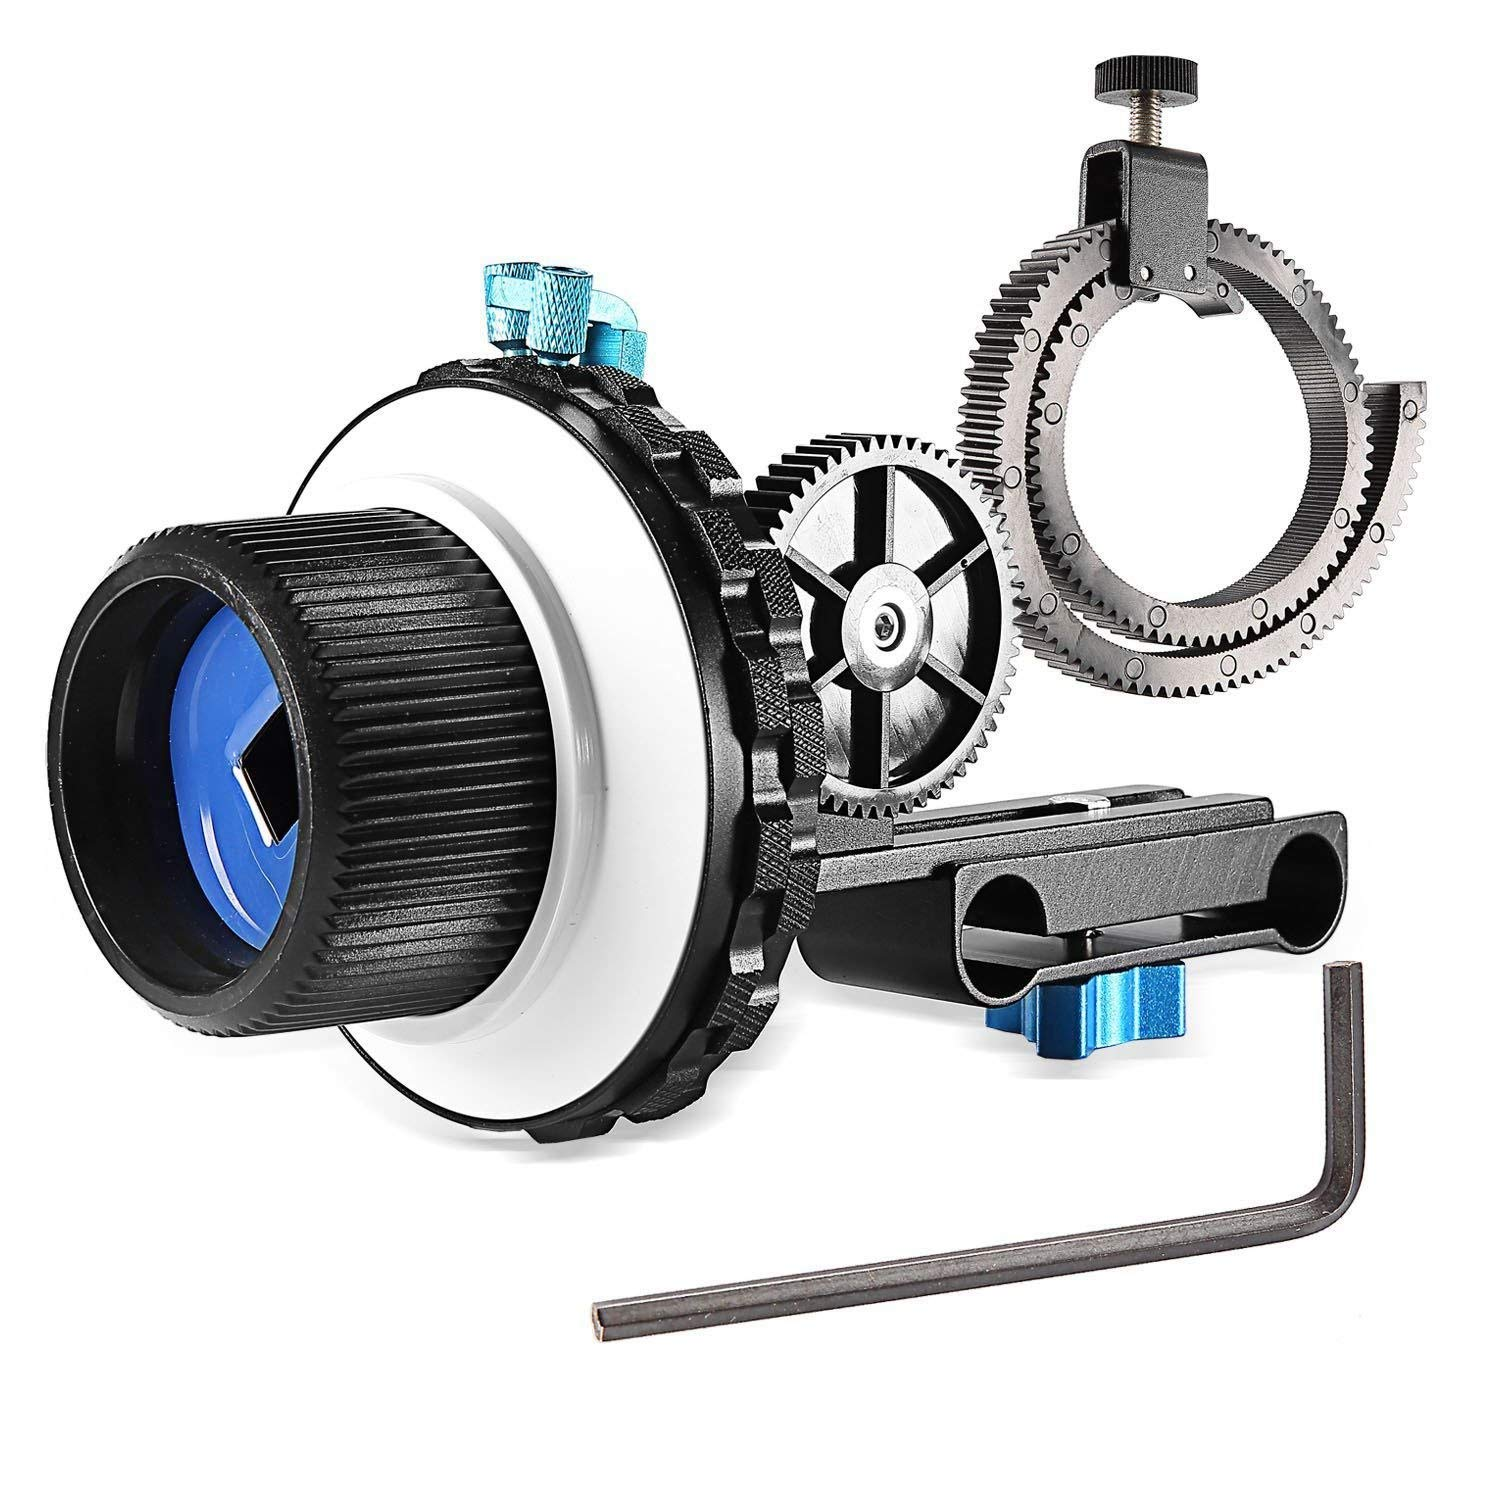 Follow Focus - A B Stop Follow Focus C2 With Gear Ring Belt Such As Nikon Canon Sony Dv Camcorder Film Video Fits - 15mm Shoulder Fits Sony Proaim Case Remote Aperture Mount Sigma Dv/camcorde